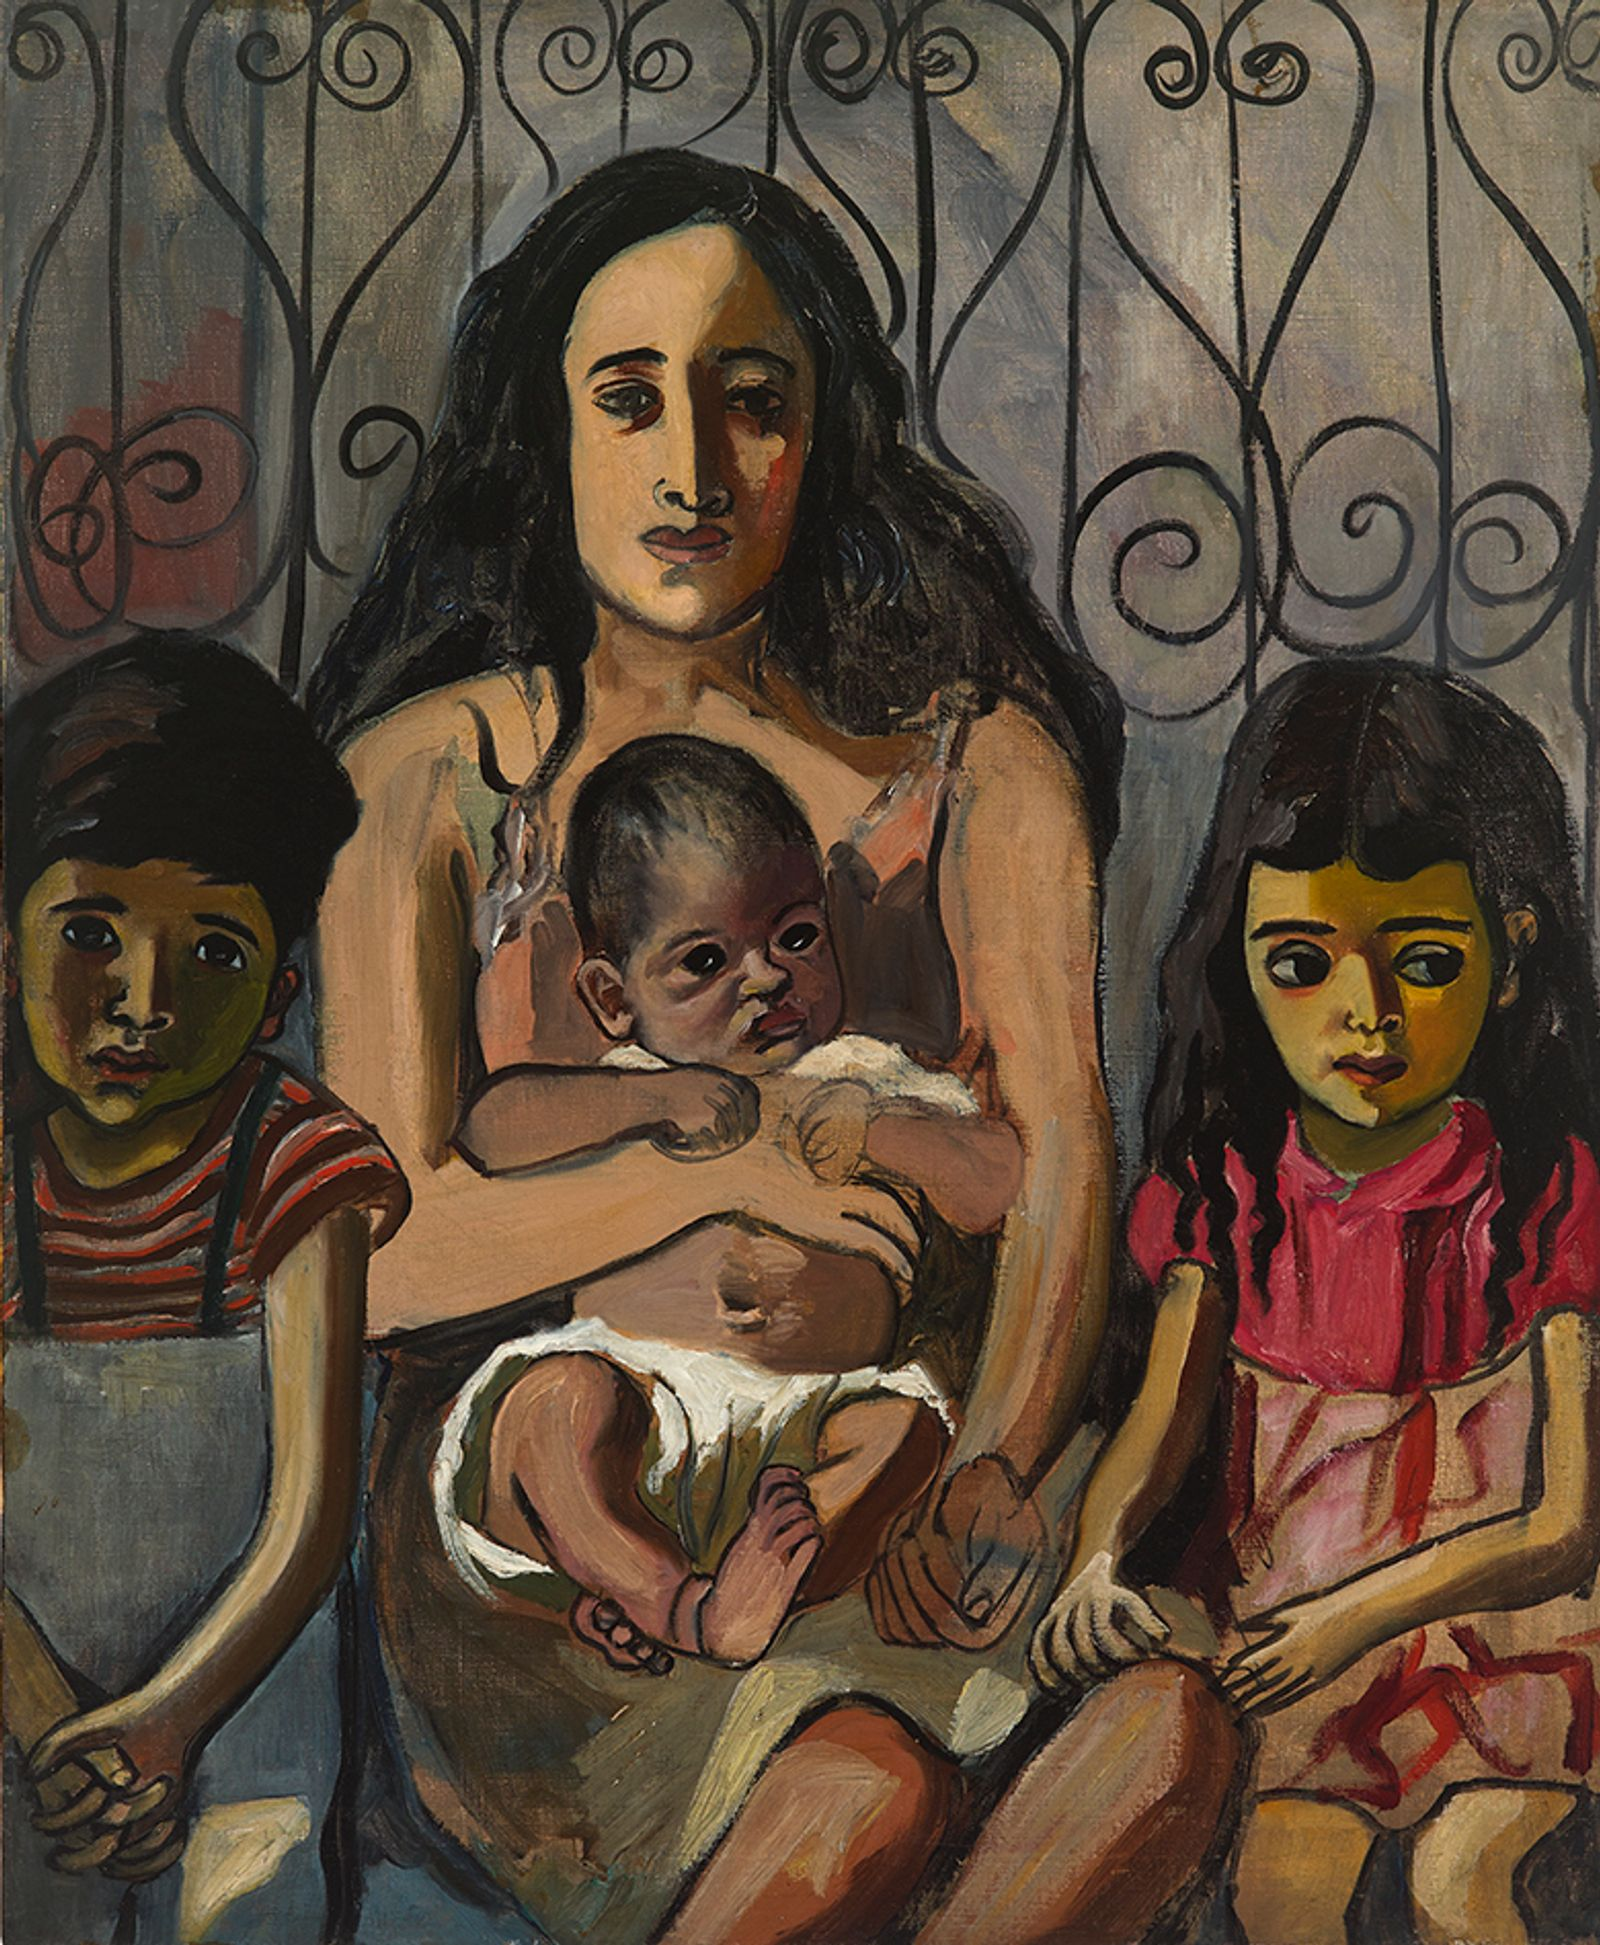 A woman holds a baby flanked by two small kids.